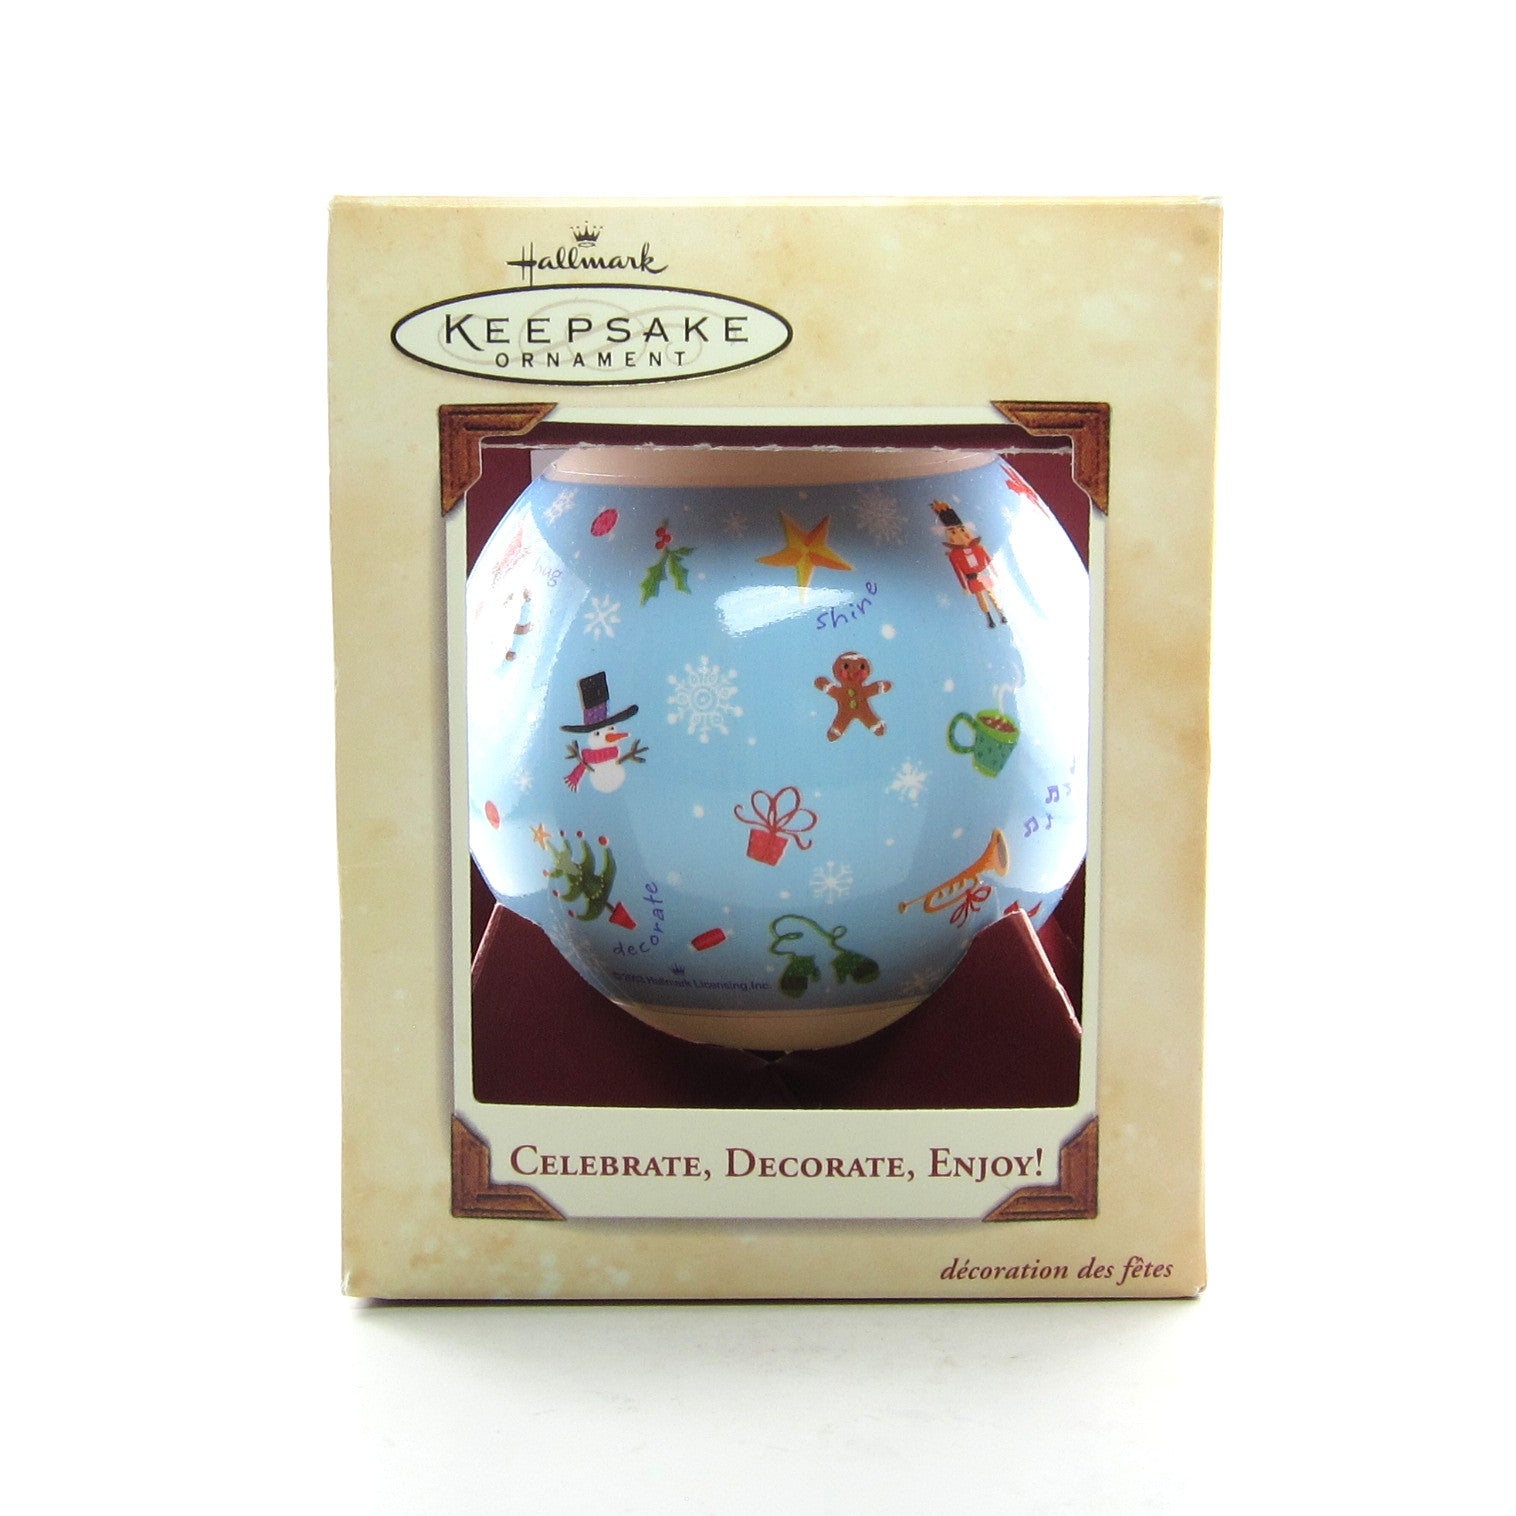 Celebrate, Decorate, Enjoy! 2003 glass ball Hallmark Christmas ornament